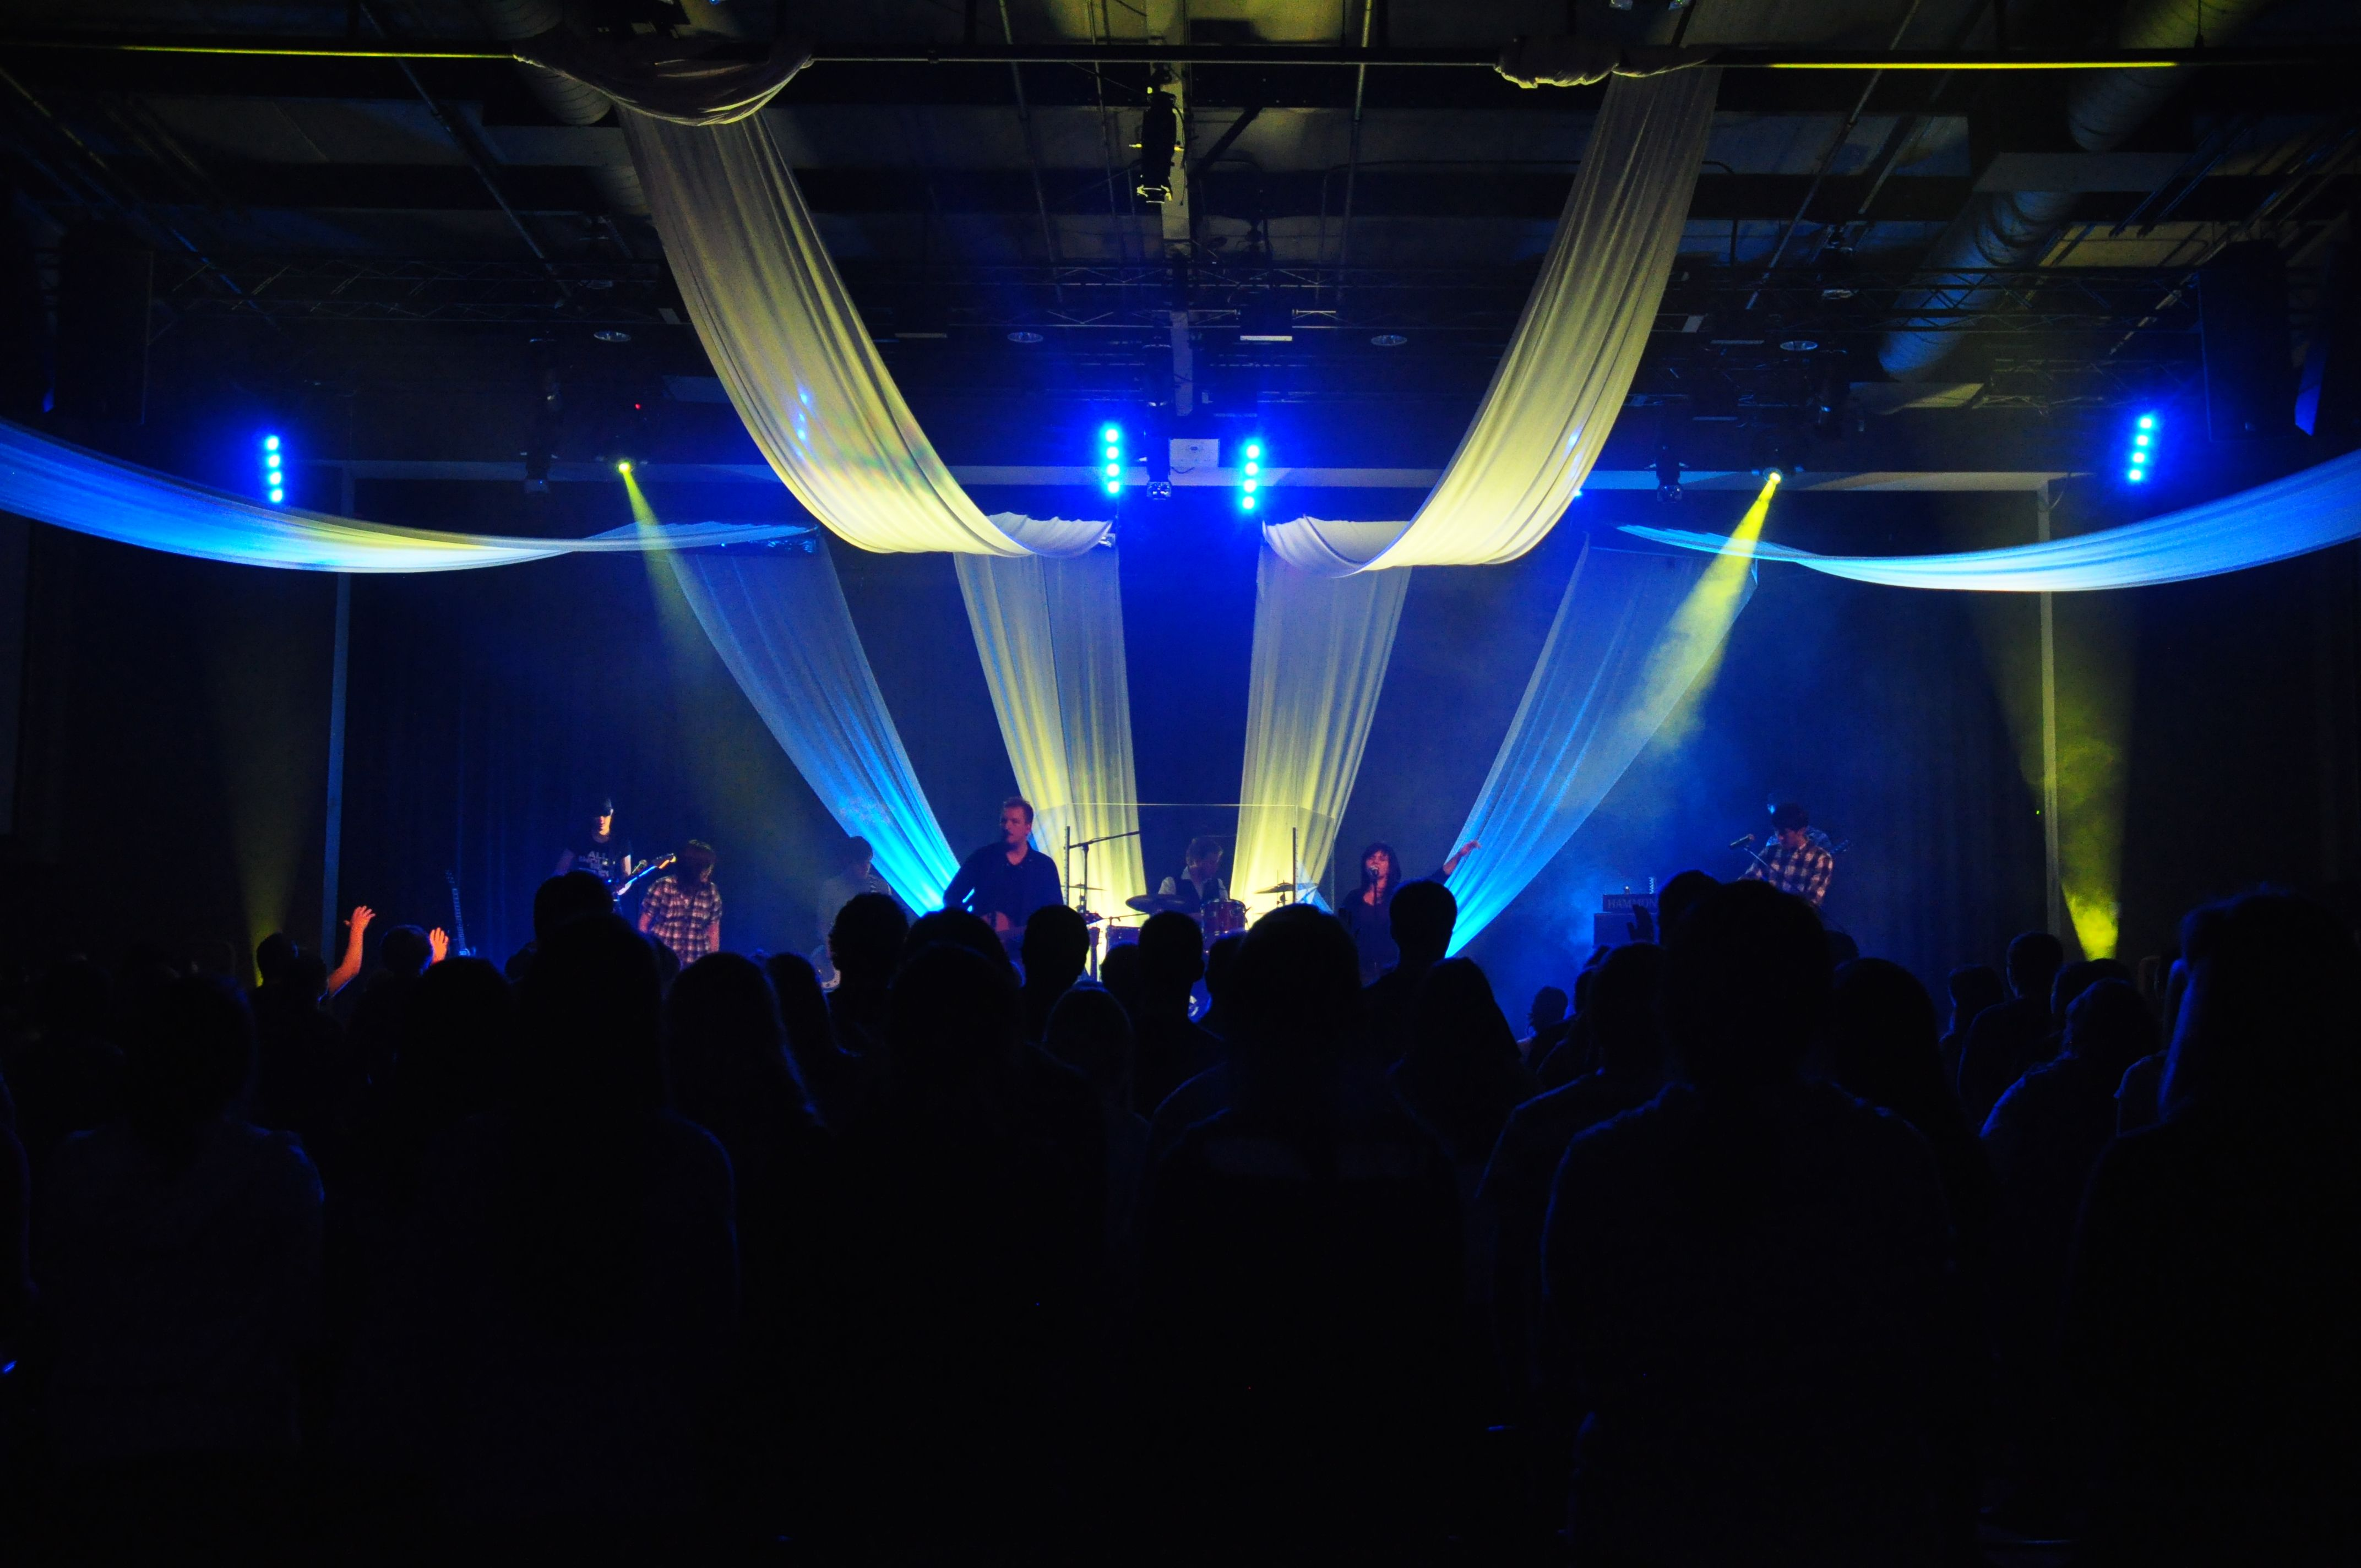 church stage design worship ideas stage set the stage church ideas set